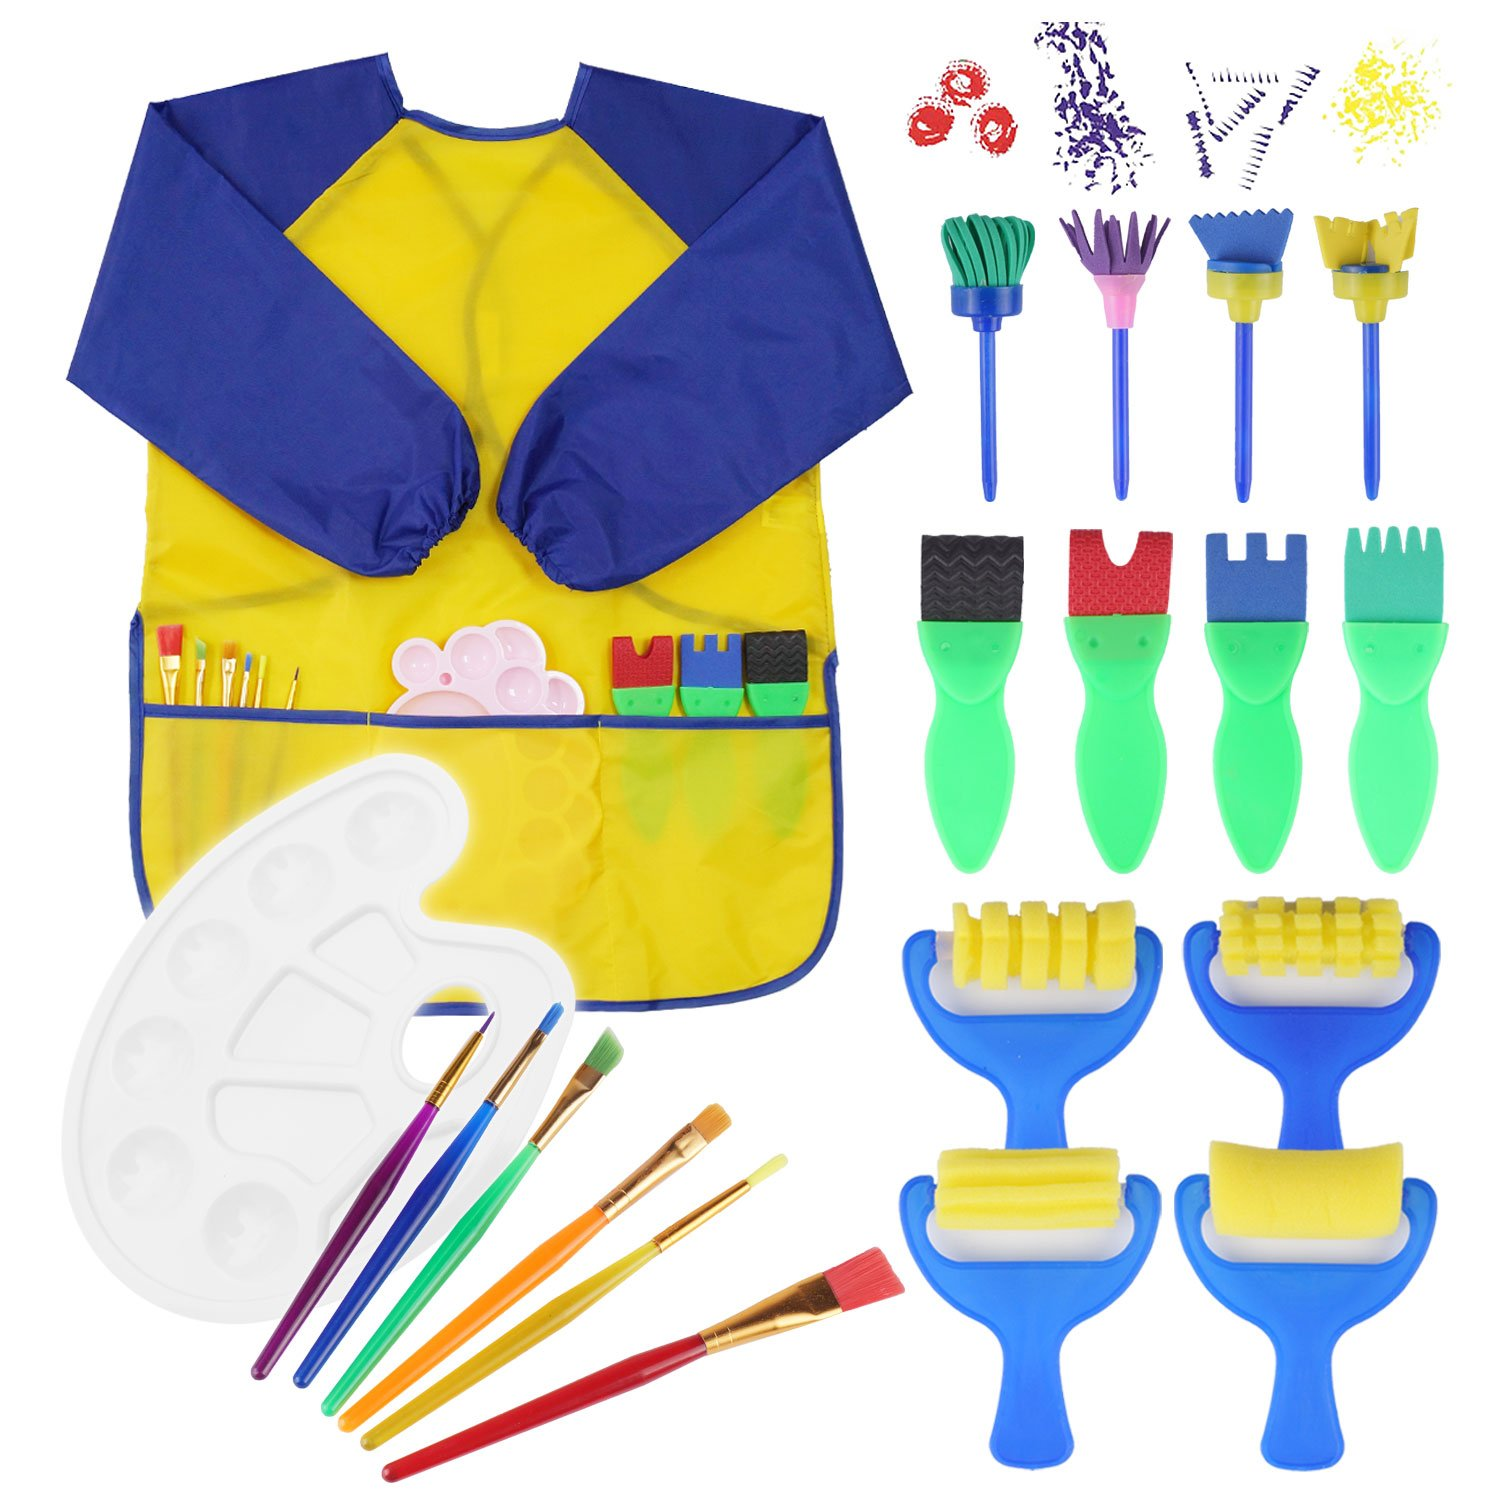 JVIGUE 20 Pieces Painting Brushes Sponge Drawing Brush Set with Palette and Apron Painting Tools (Yellow)